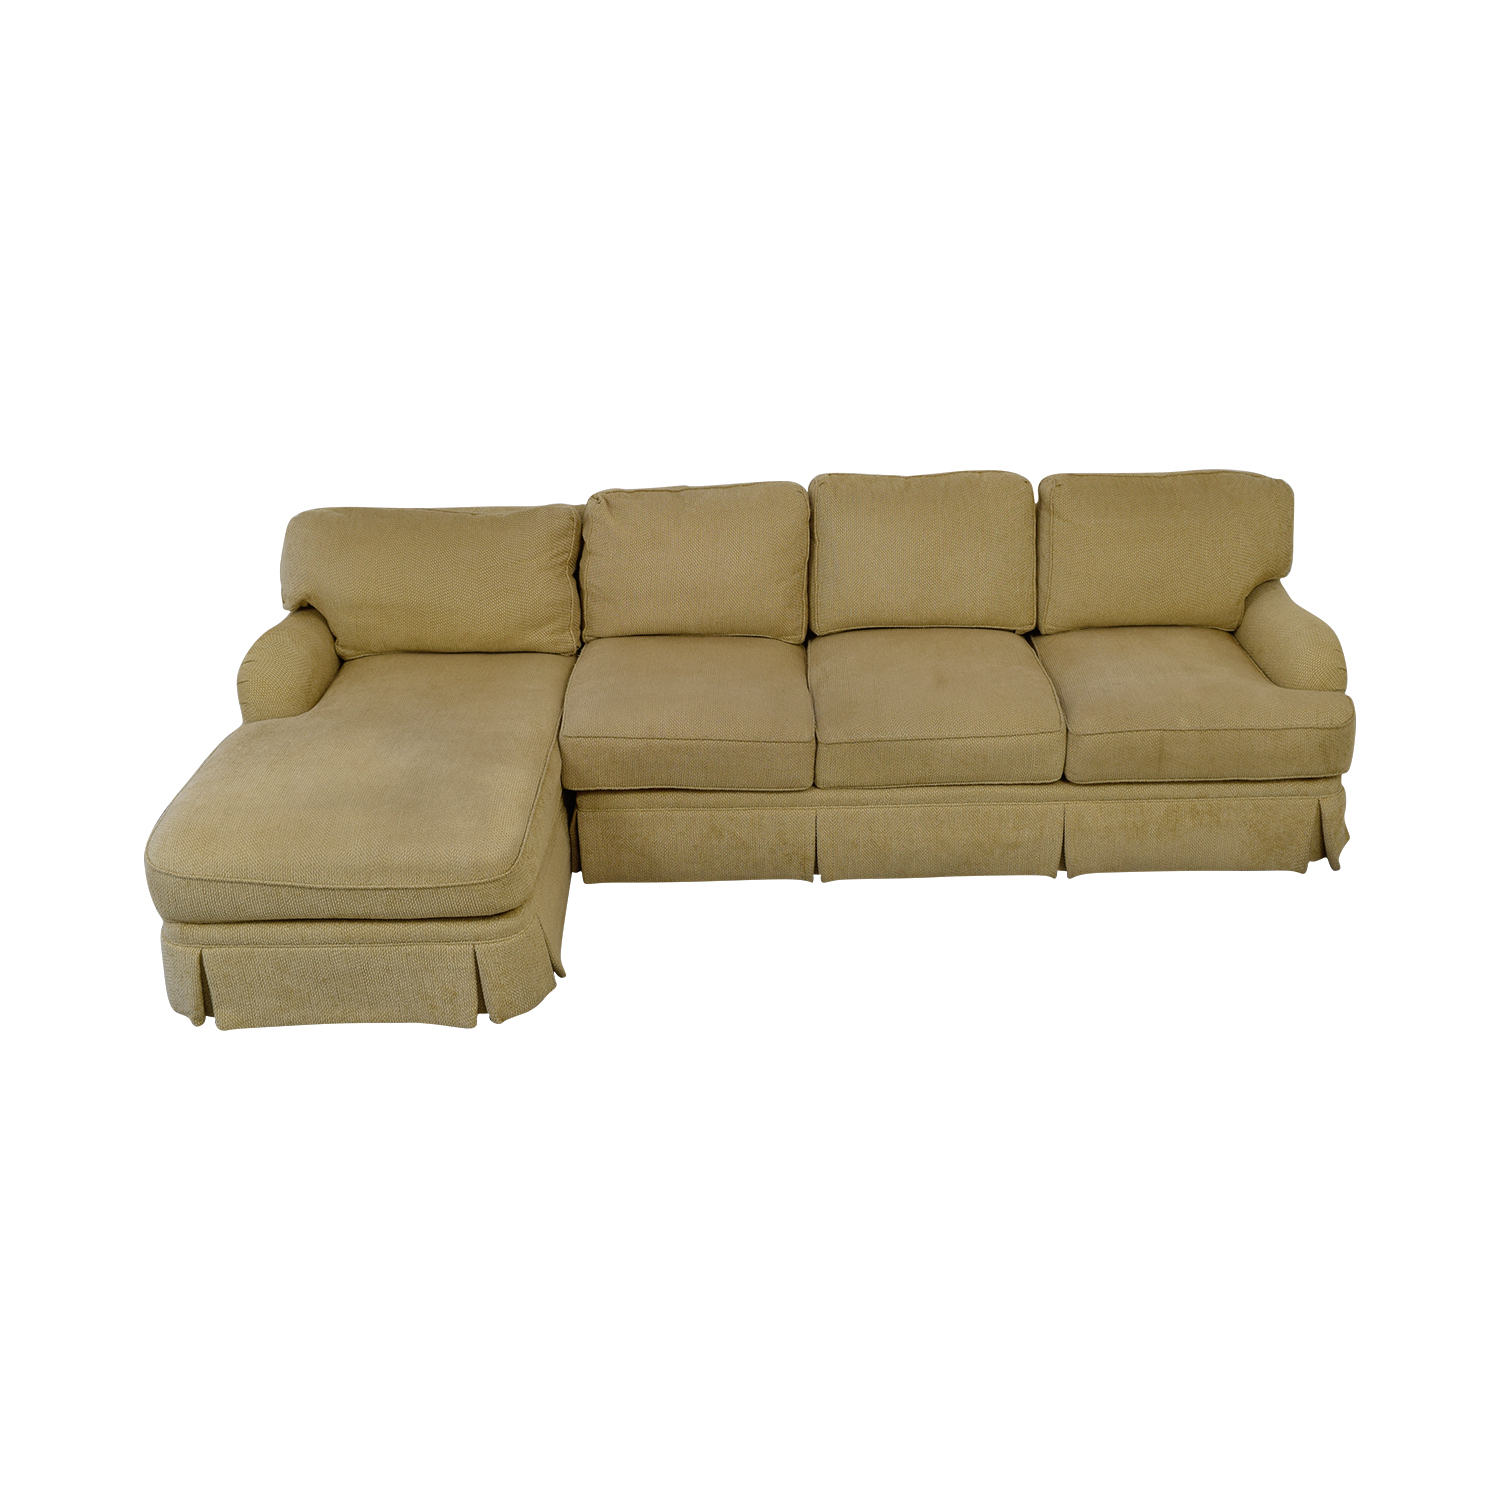 shop C R Laine Beige Skirted Chaise Sectional C R Laine Sectionals